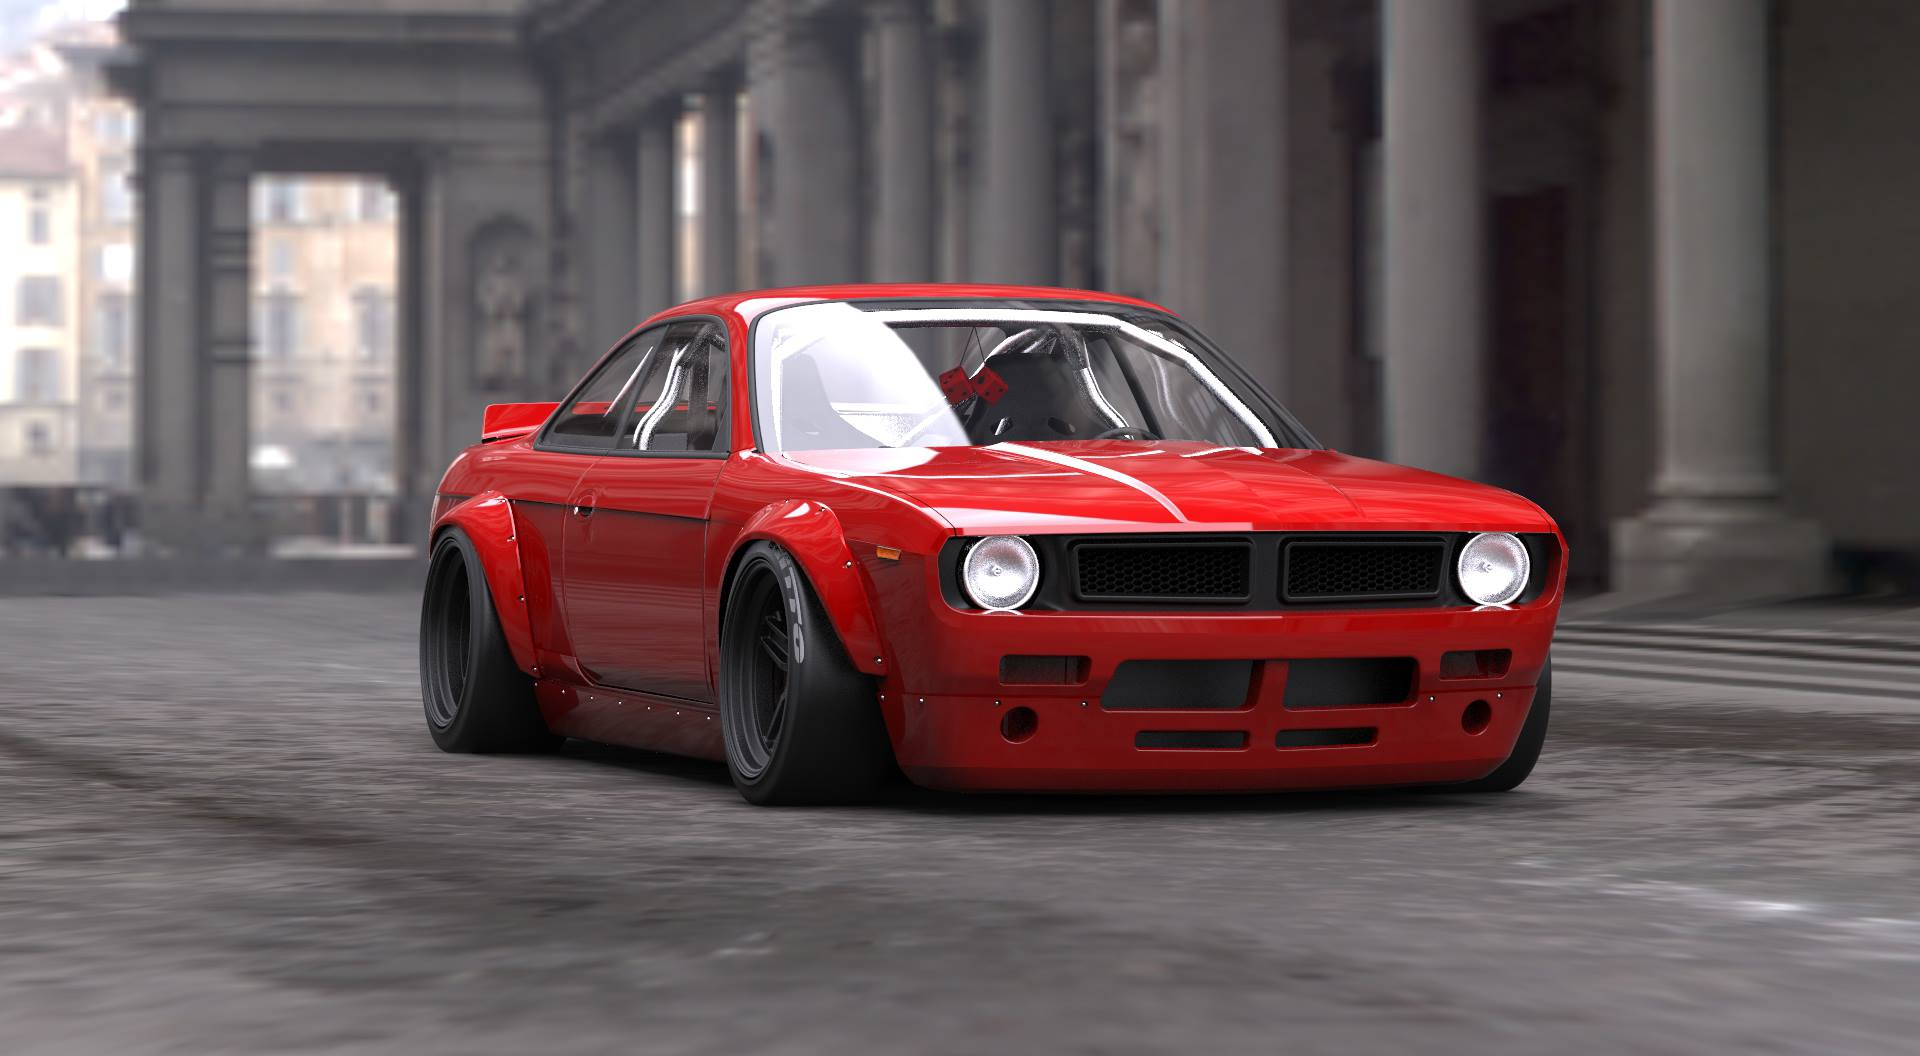 Rocket Bunny Body Kit Turns Your S14 into a Plymouth 'Cuda - The News Wheel